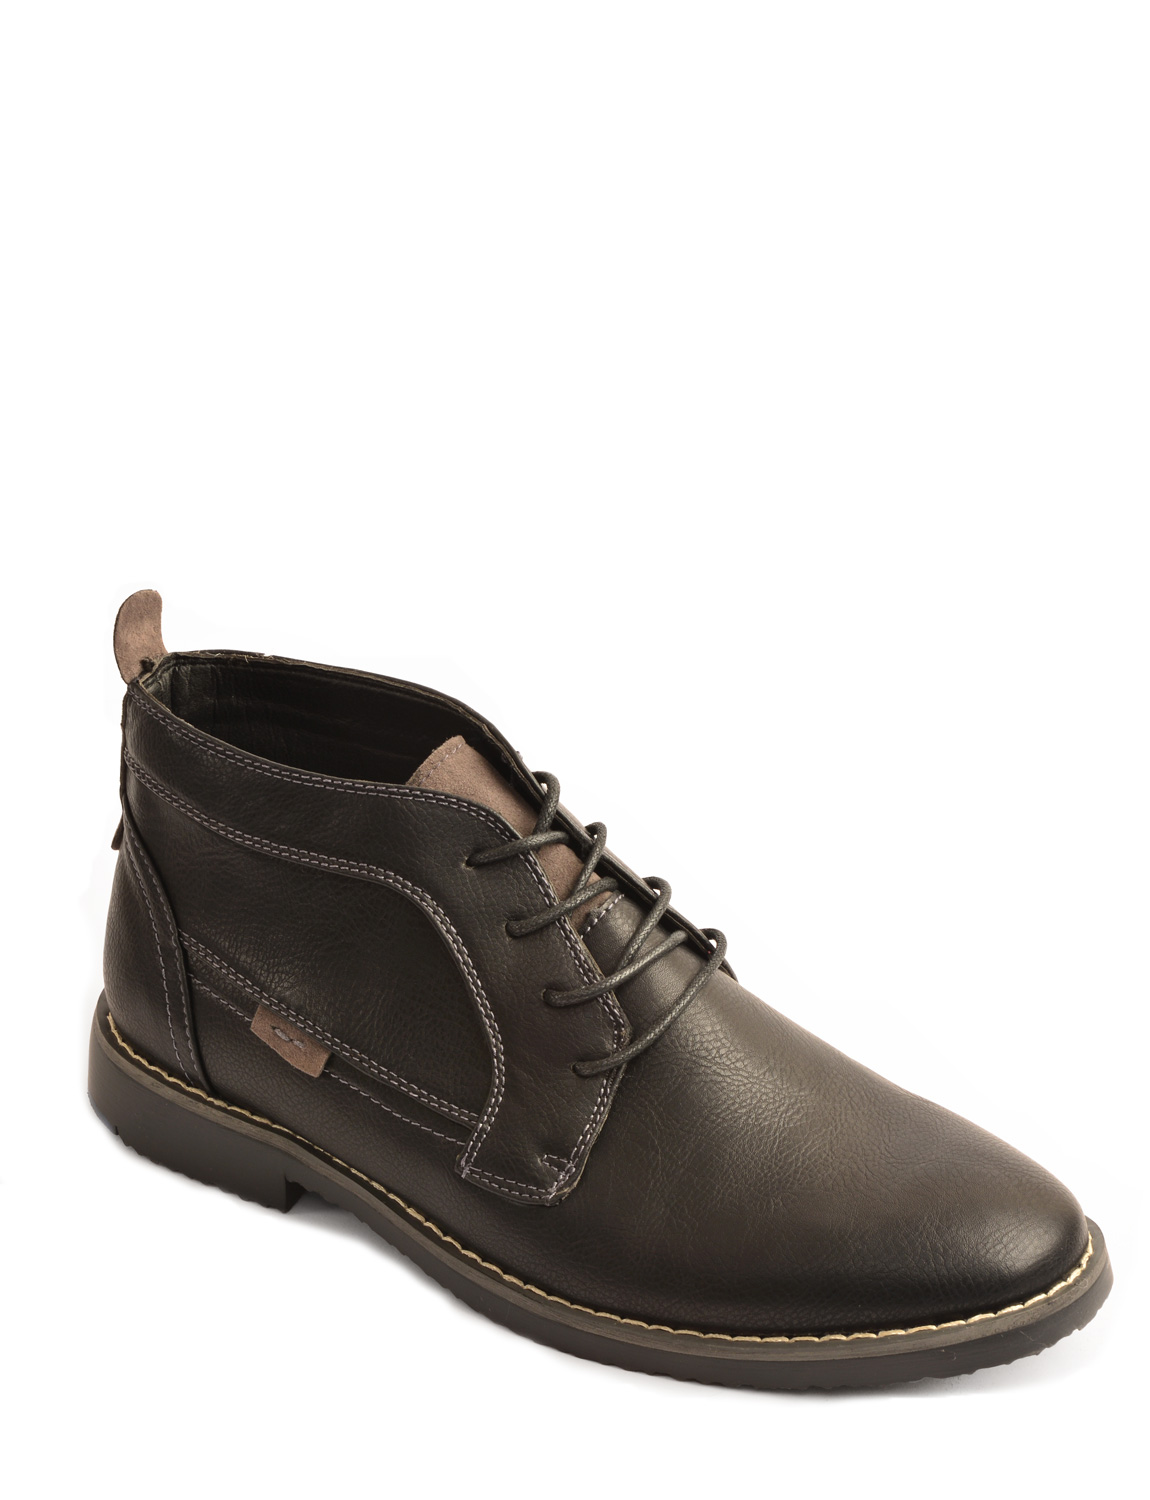 mens comfortable sturdy lace up boot ebay